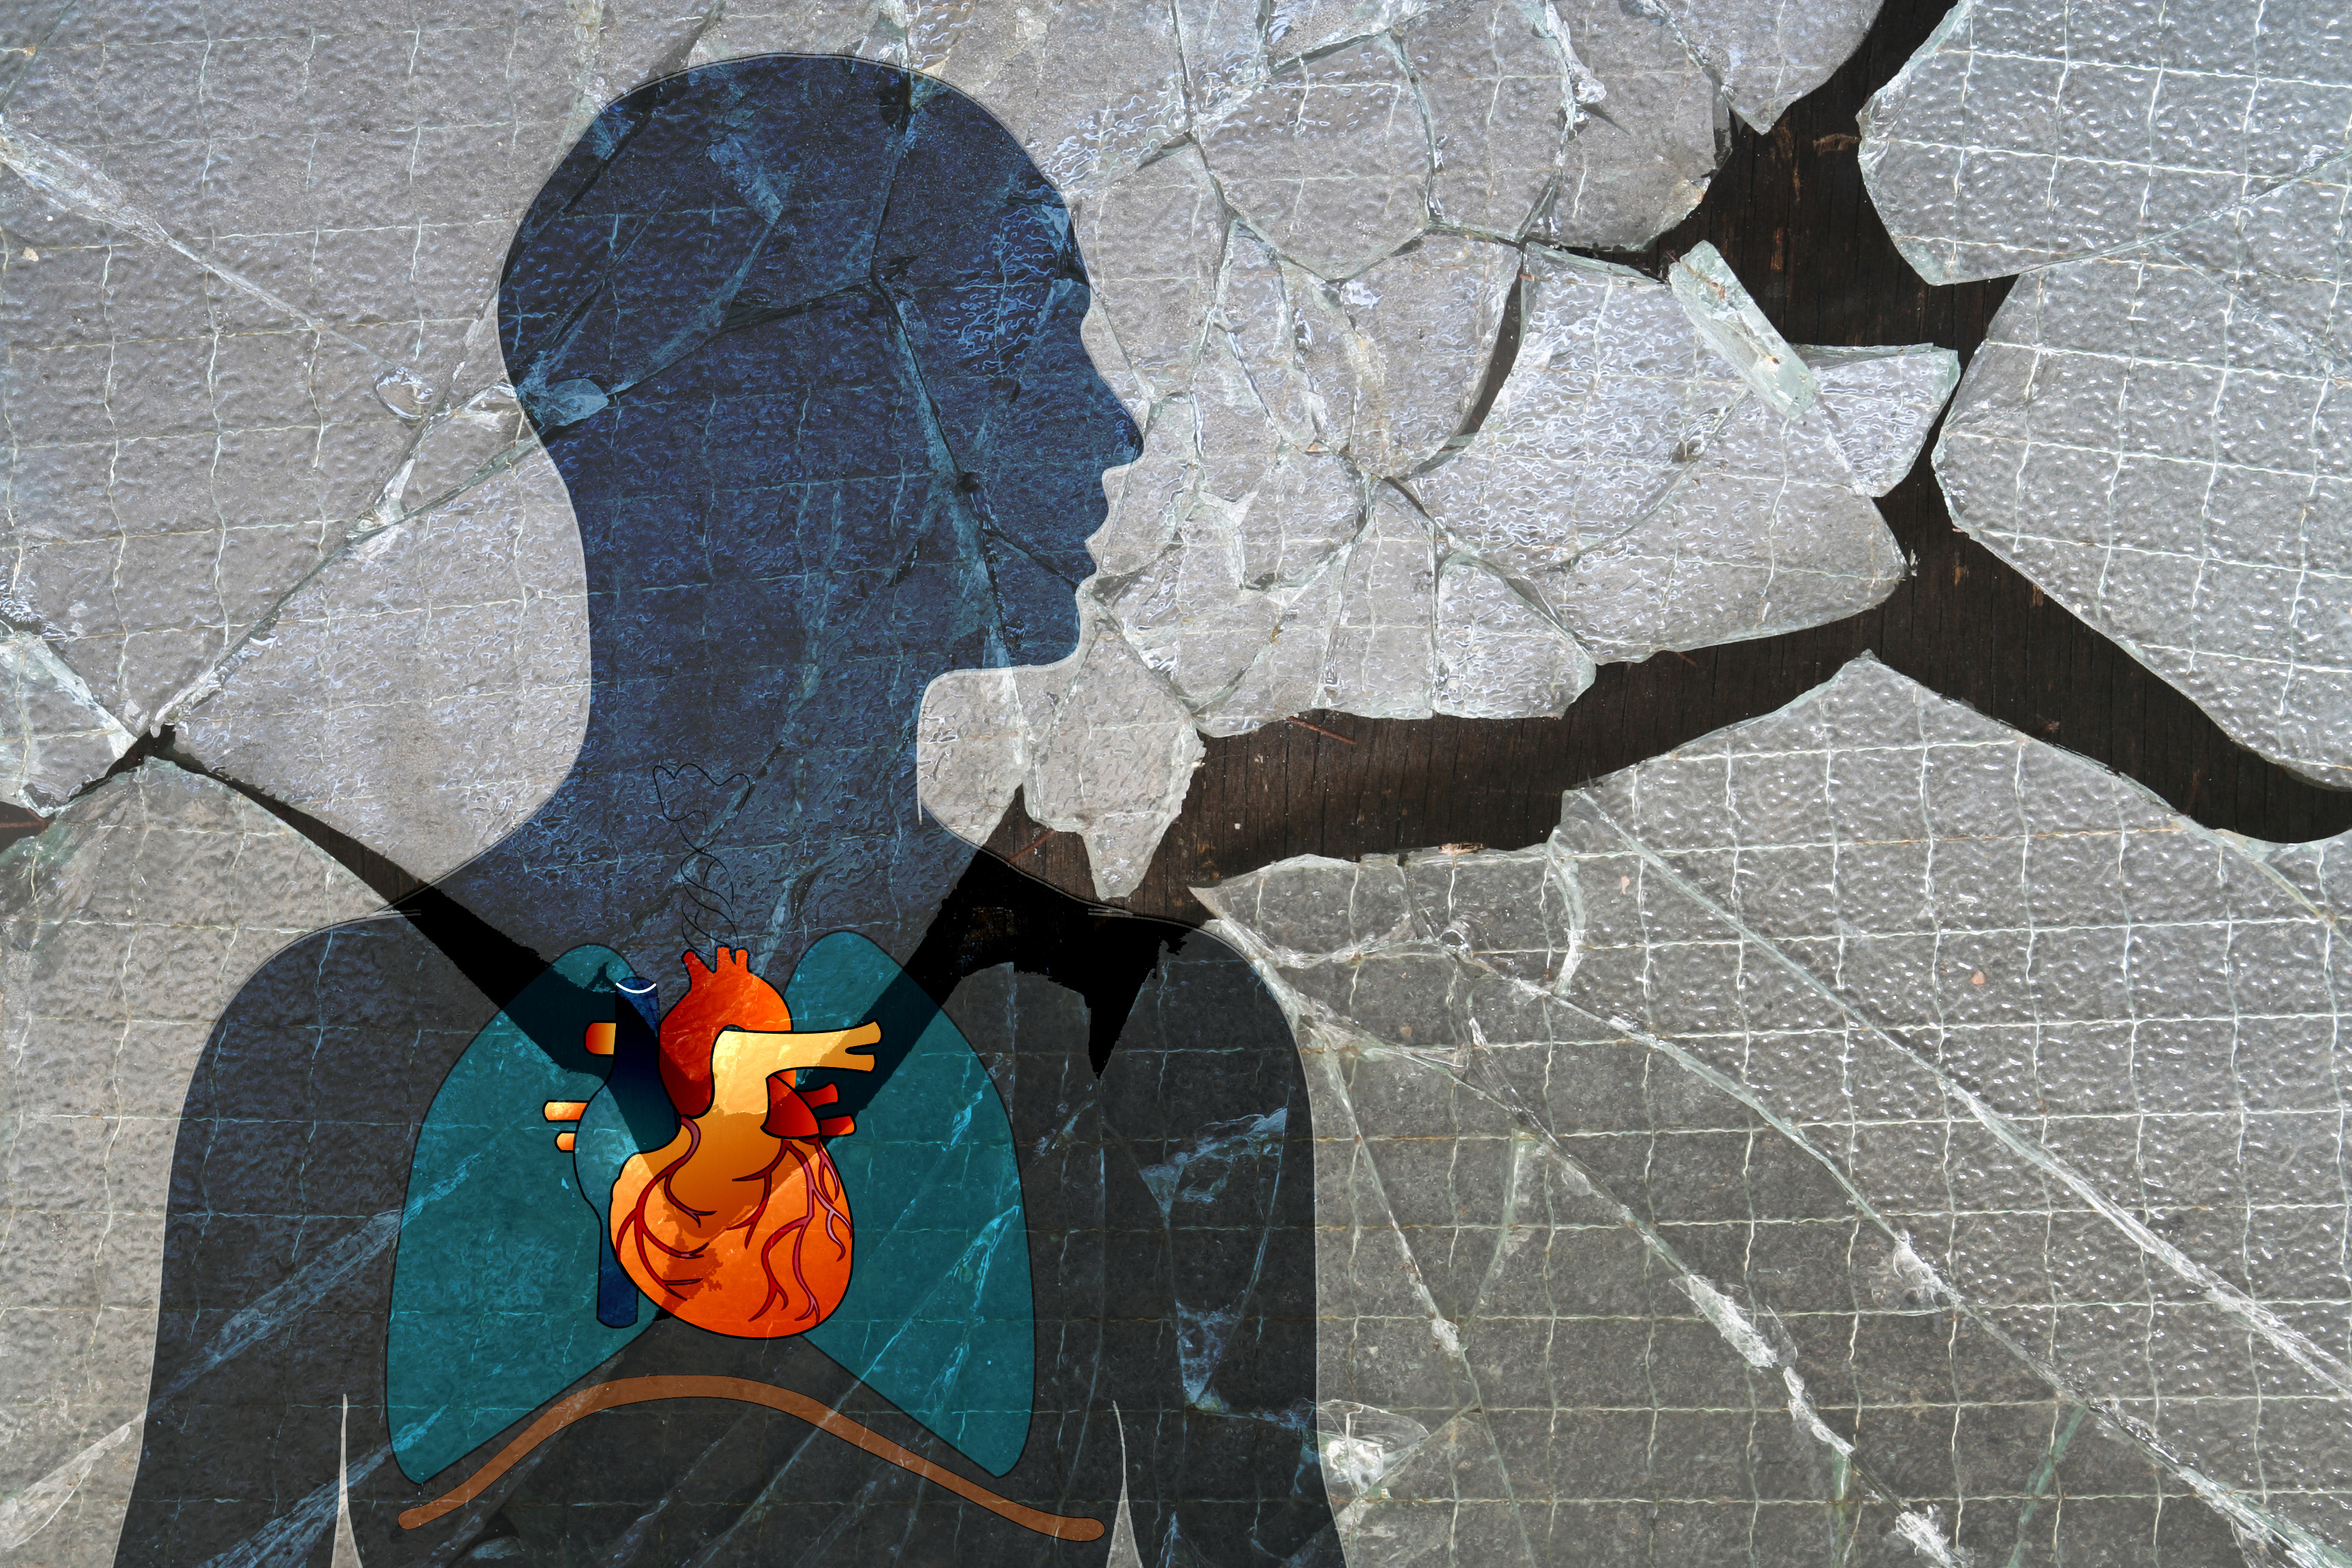 Conceptual image of a broken heart. (elusivemuse via Getty Images)